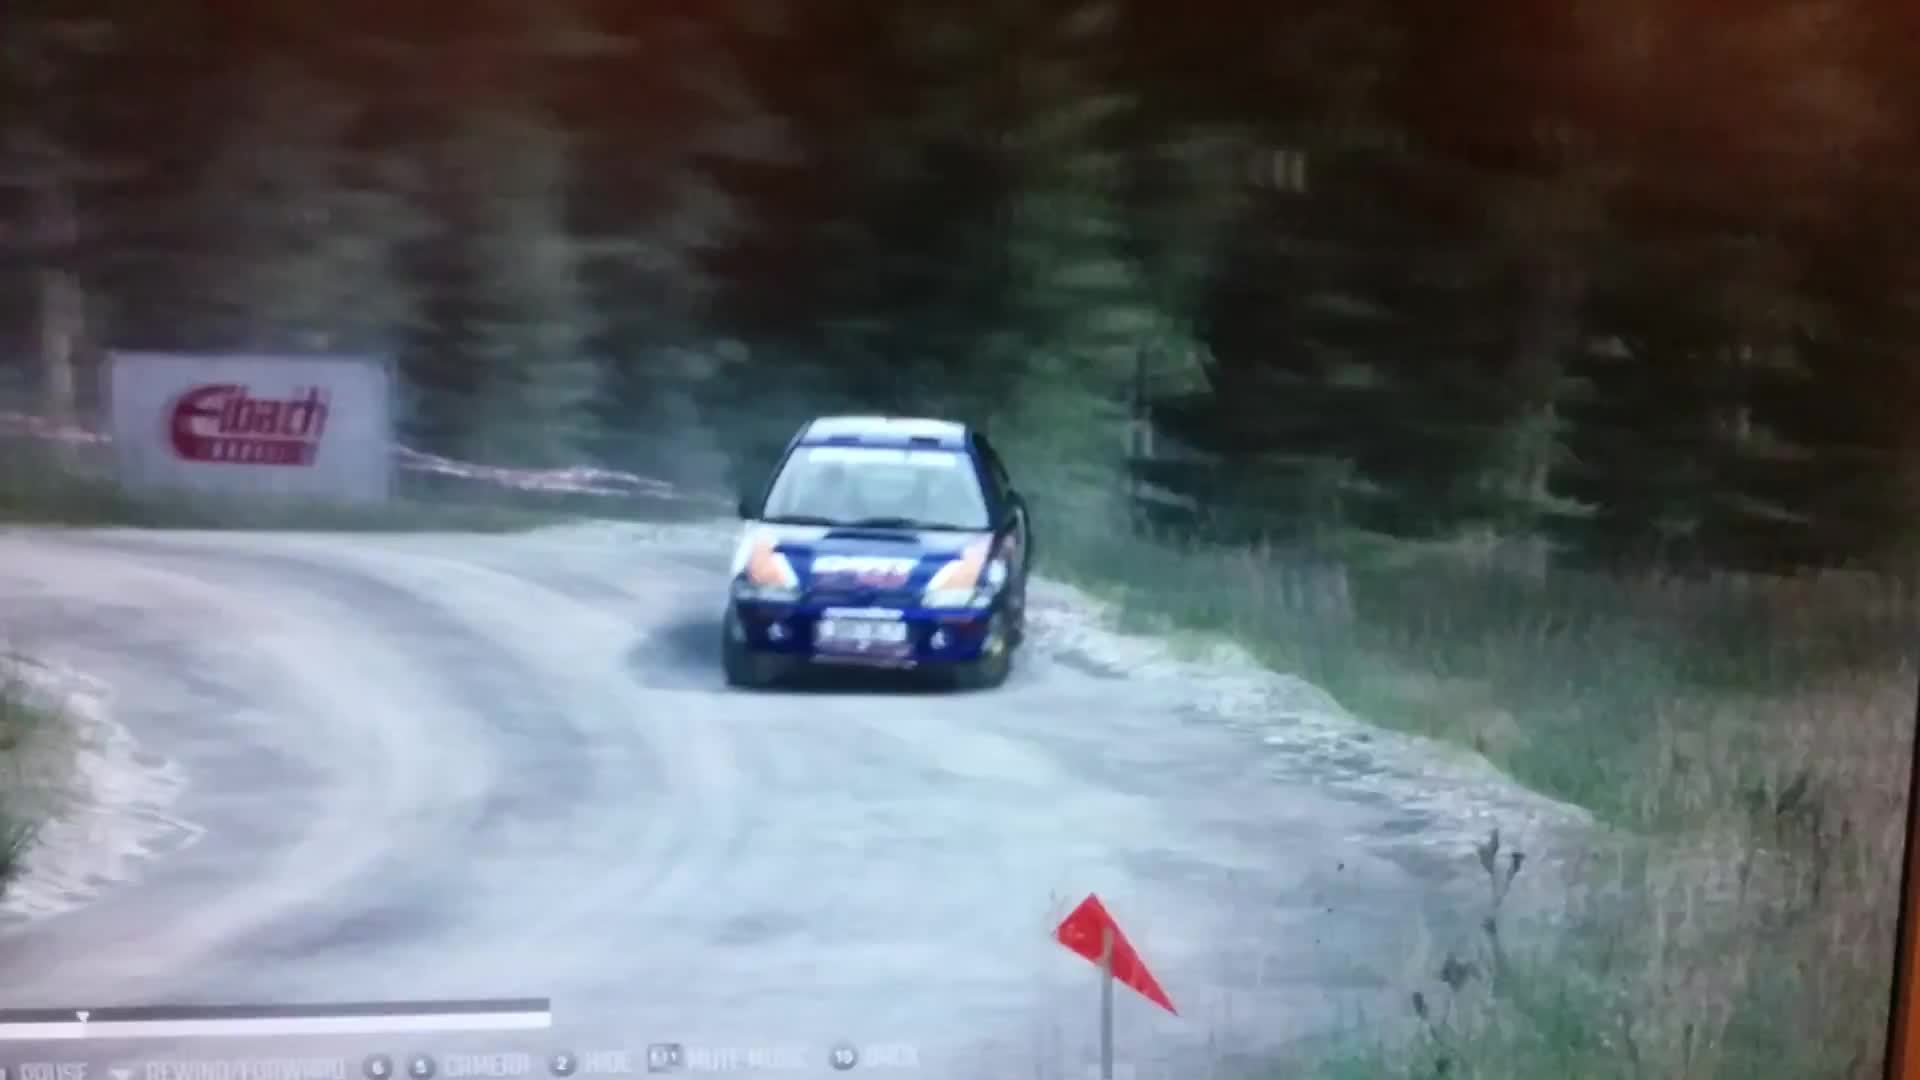 dirtgame, Dirt rally Wales over the top Scandinavian flick GIFs